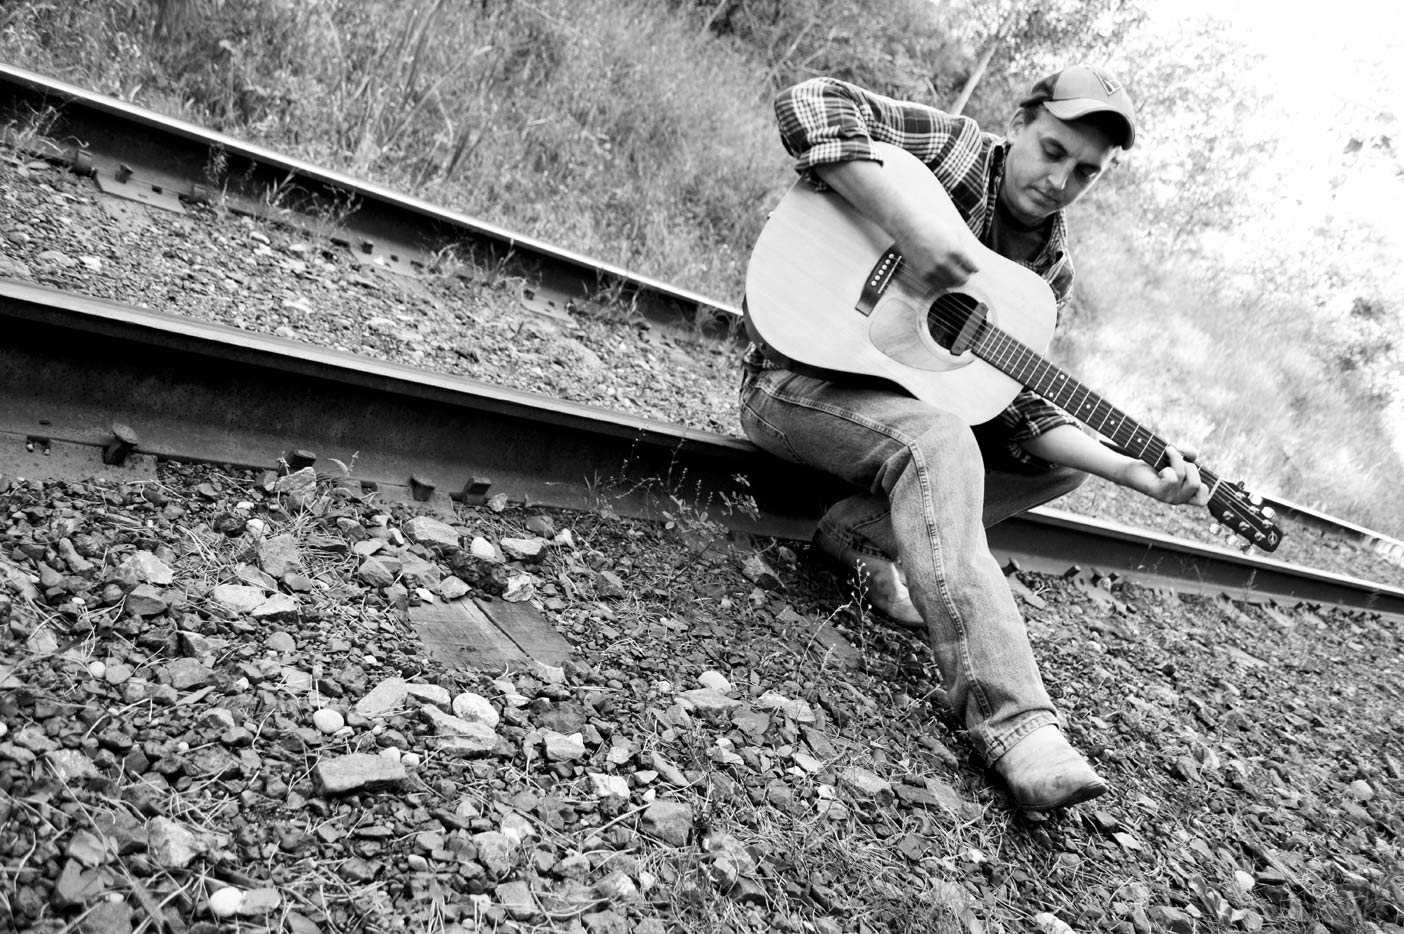 Playing an old-time country tune down at the tracks.